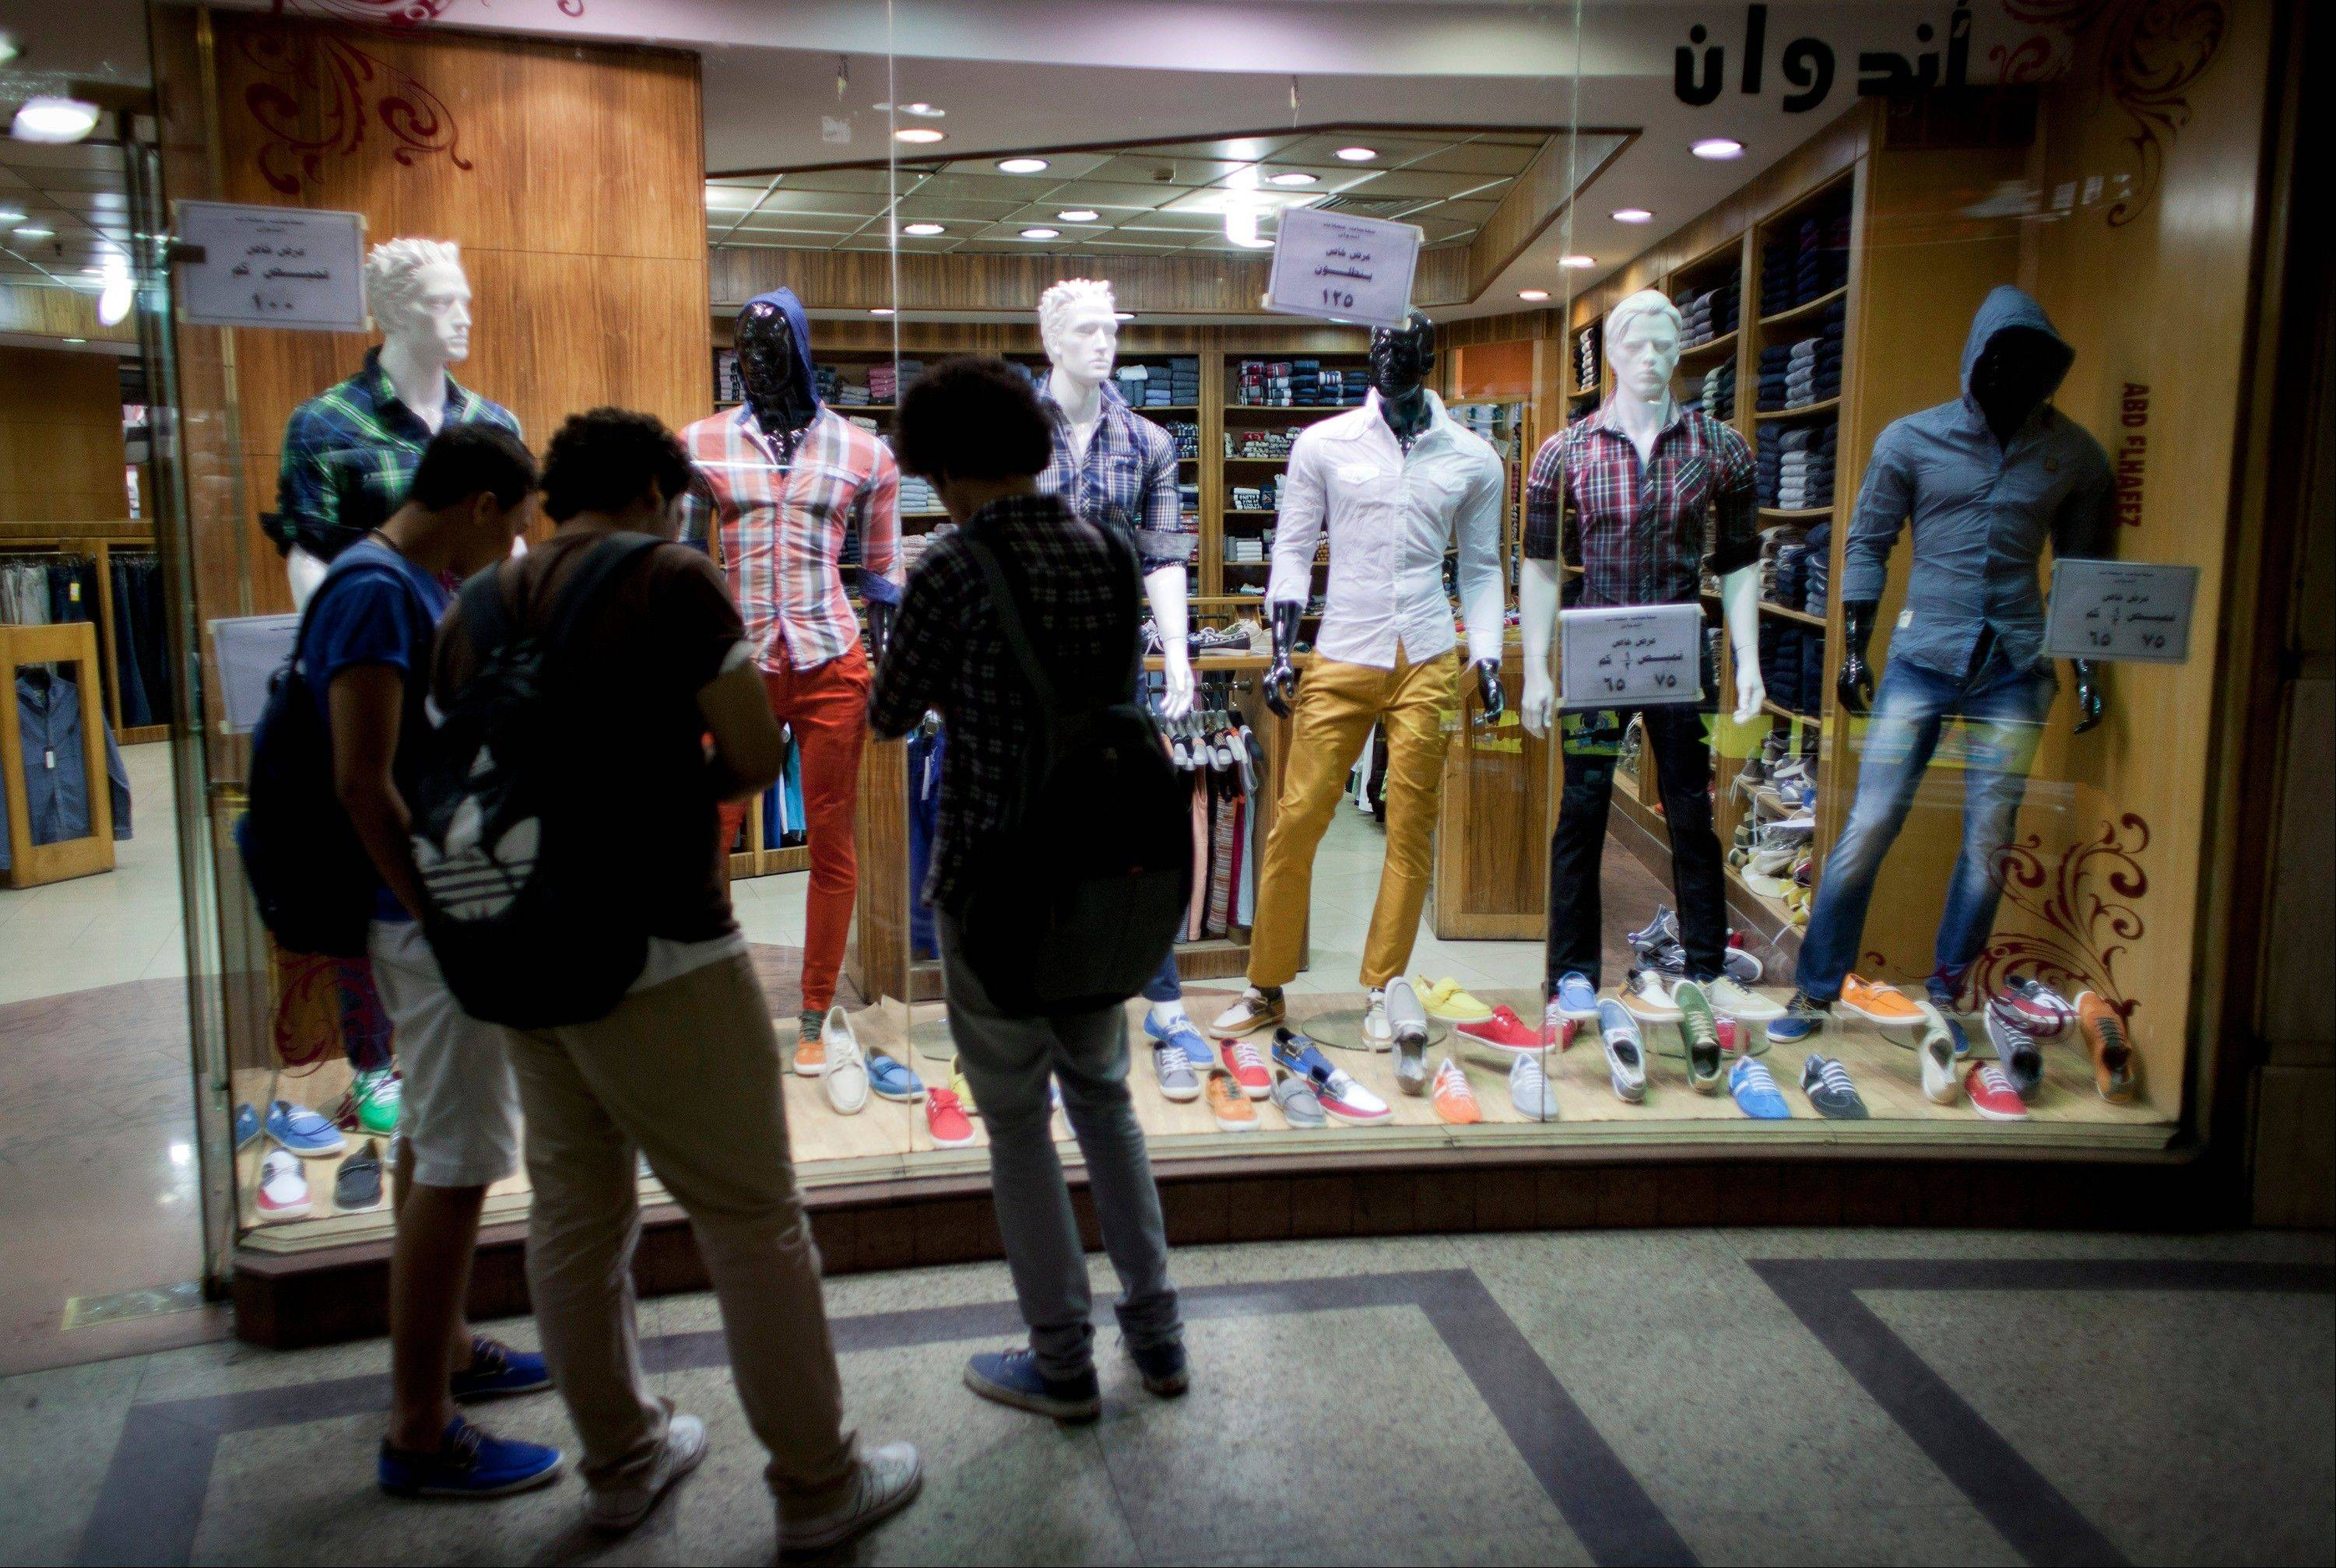 Egyptian men shop inside a commercial mall in Cairo Wednesday. Egypt's capital prides itself on being city that never sleeps, with crowds filling cafes and shops open into the small hours. So the government is facing a backlash from businesses and the public as it vows to impose new nationwide rules closing stores and restaurants early. Officials say the crisis-ridden nation has to conserve electricity, but they also seem intent on taming a population they see as too unruly.